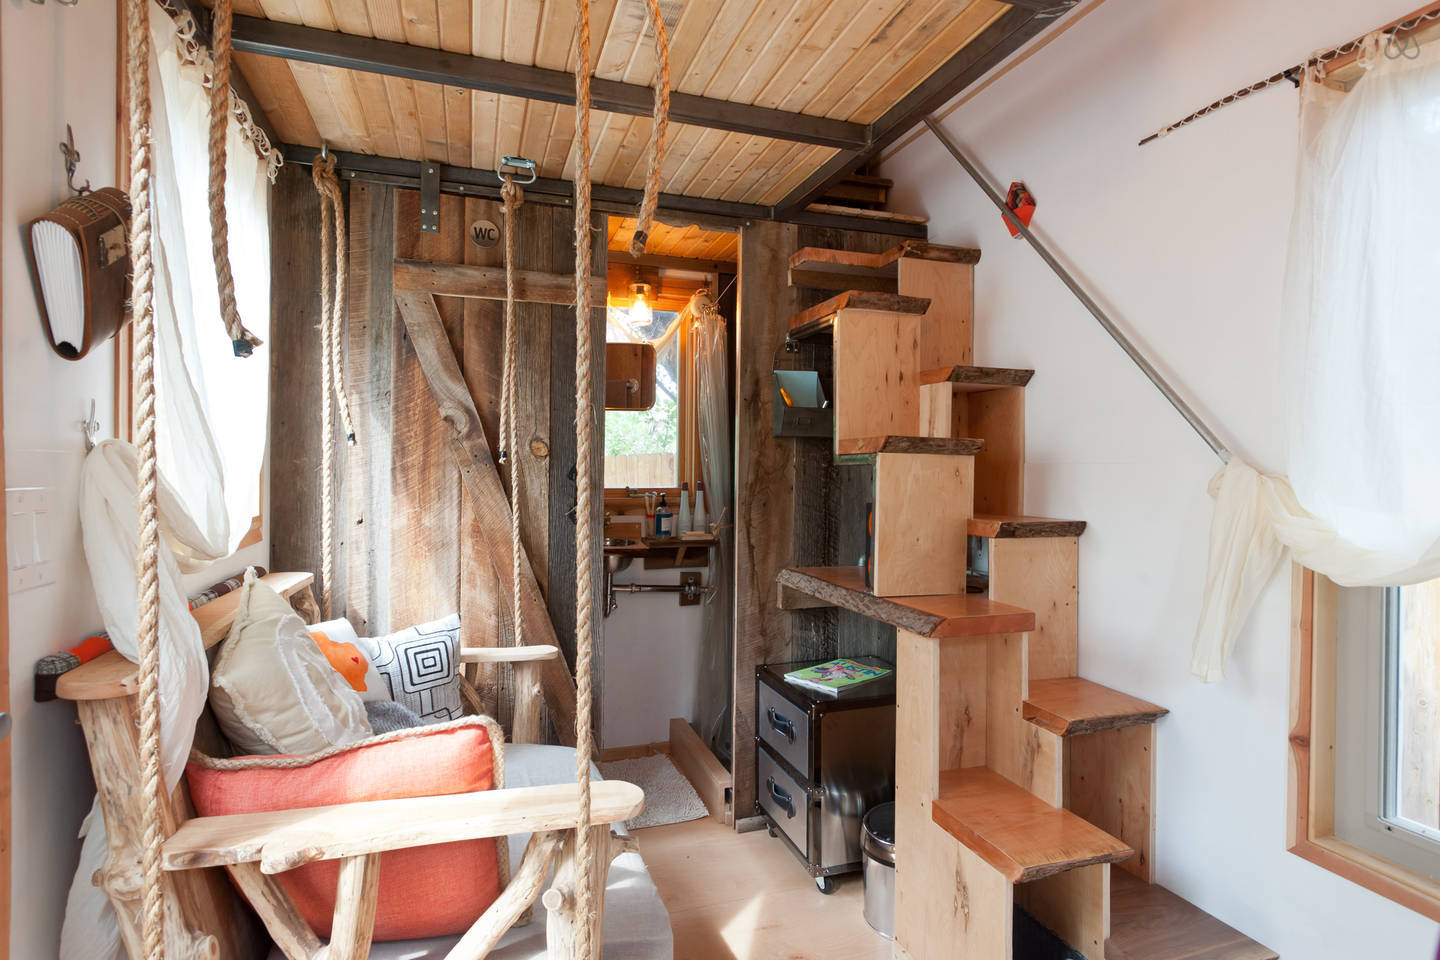 Superieur Images Via Tiny House Living · Hip East Side Tiny Pad Interior